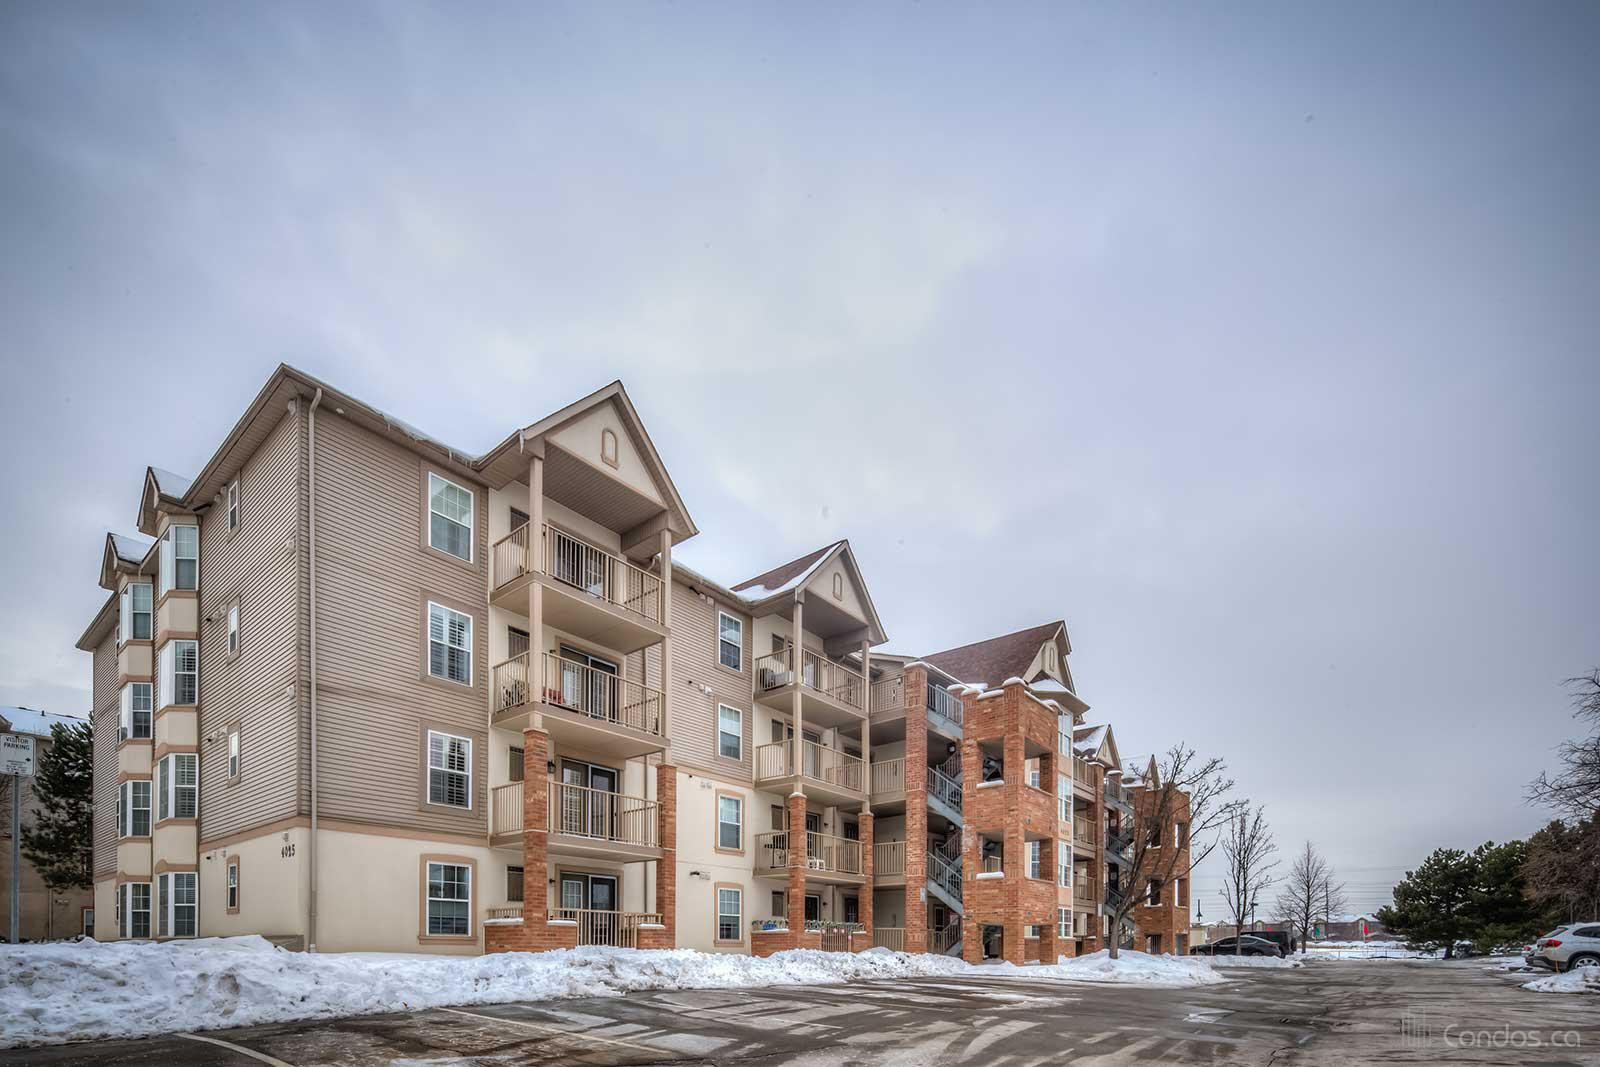 Tansley Gardens at 4025 Kilmer Dr, Burlington 1